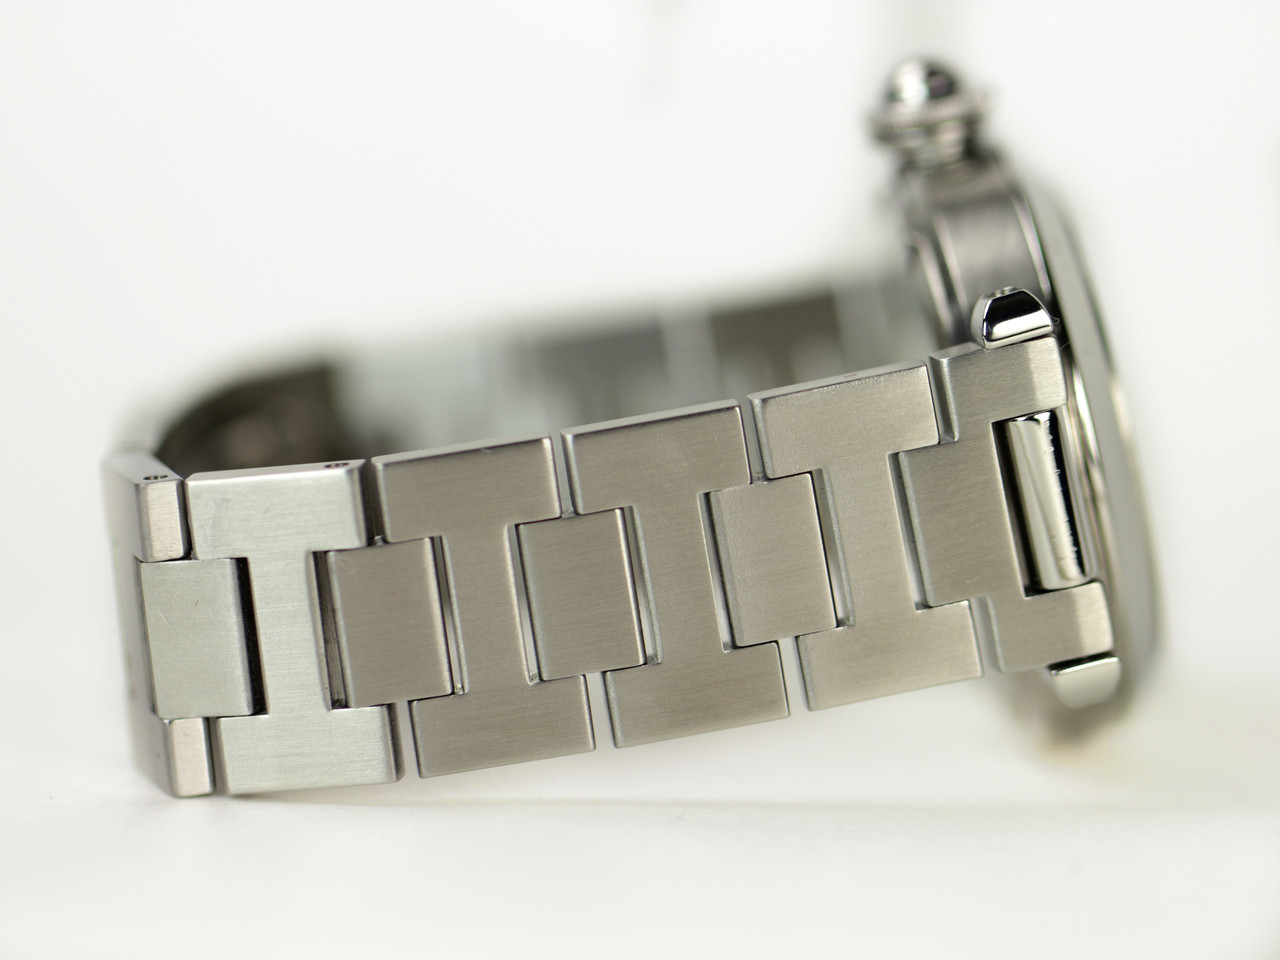 For Sale used Cartier Watch - Pasha C 35mm Stainless Steel W31074M7/2475  -  online www.Legendoftime.com and in store in Chicago Watch Center